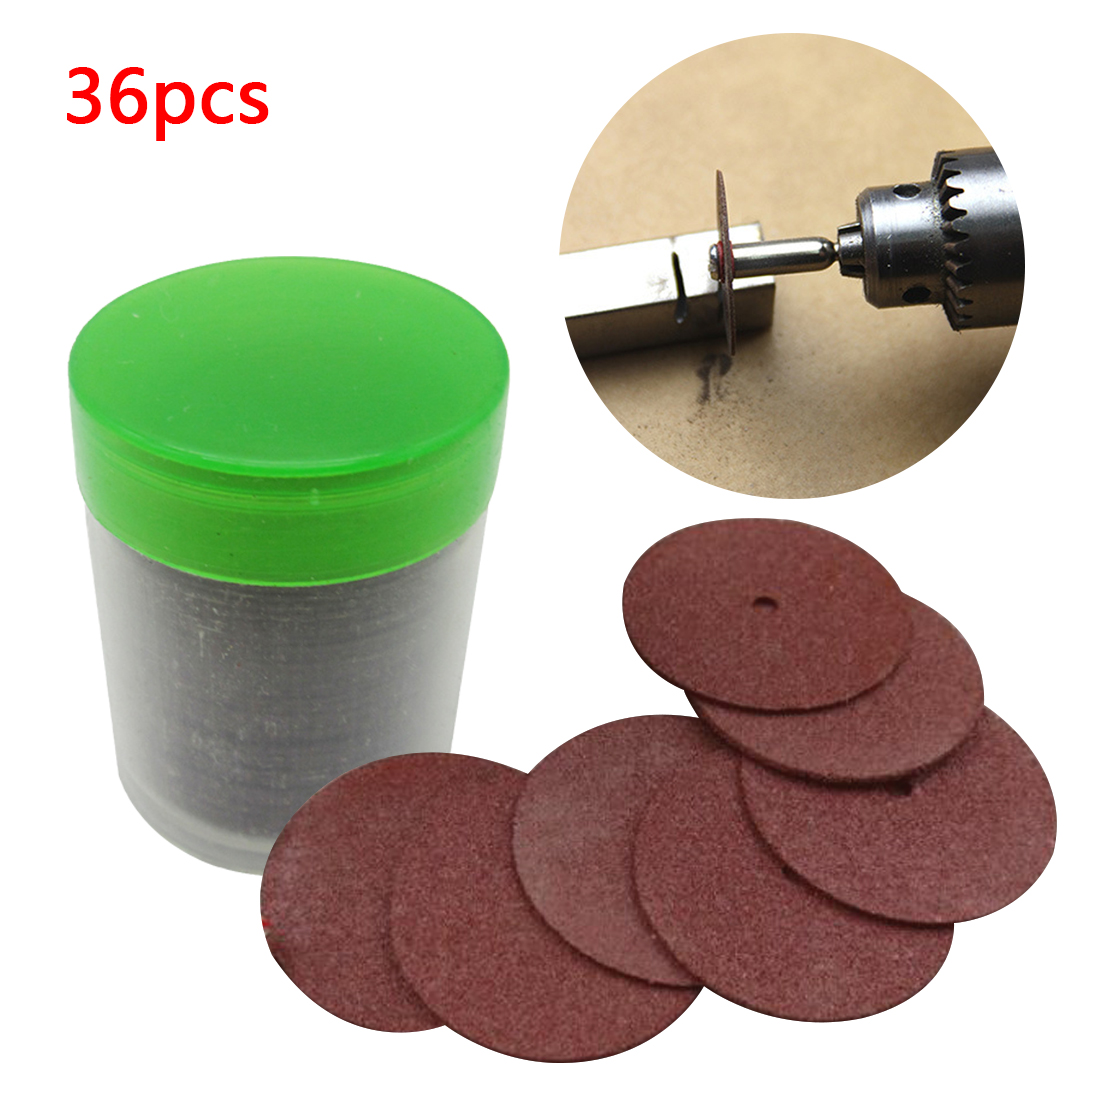 New 36Pcs Cutting Disc Circular Saw Blade Grinding Wheel For Dremel Rotary Tool Abrasive Sanding Disc Tools Cutting Wood Metal